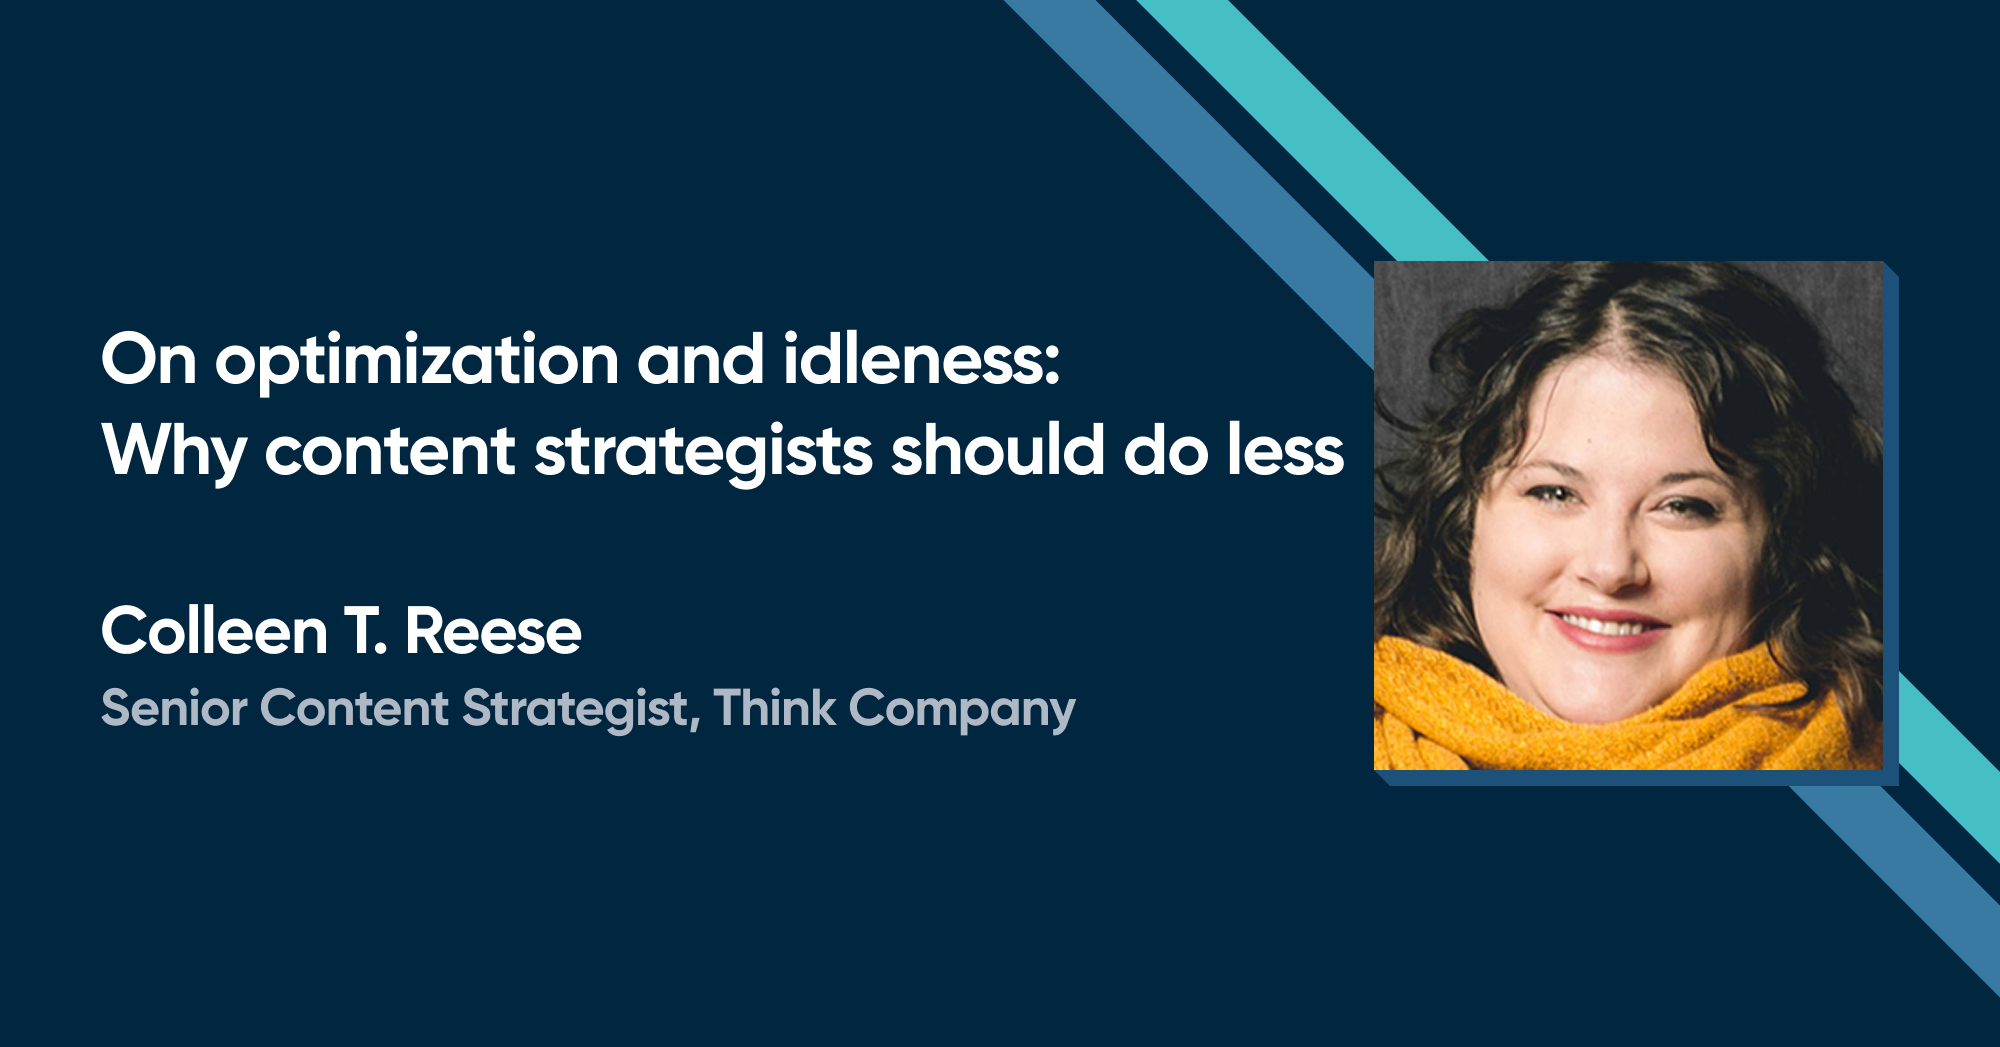 Colleen T. Reese - On optimization and idleness: Why content strategists should do less